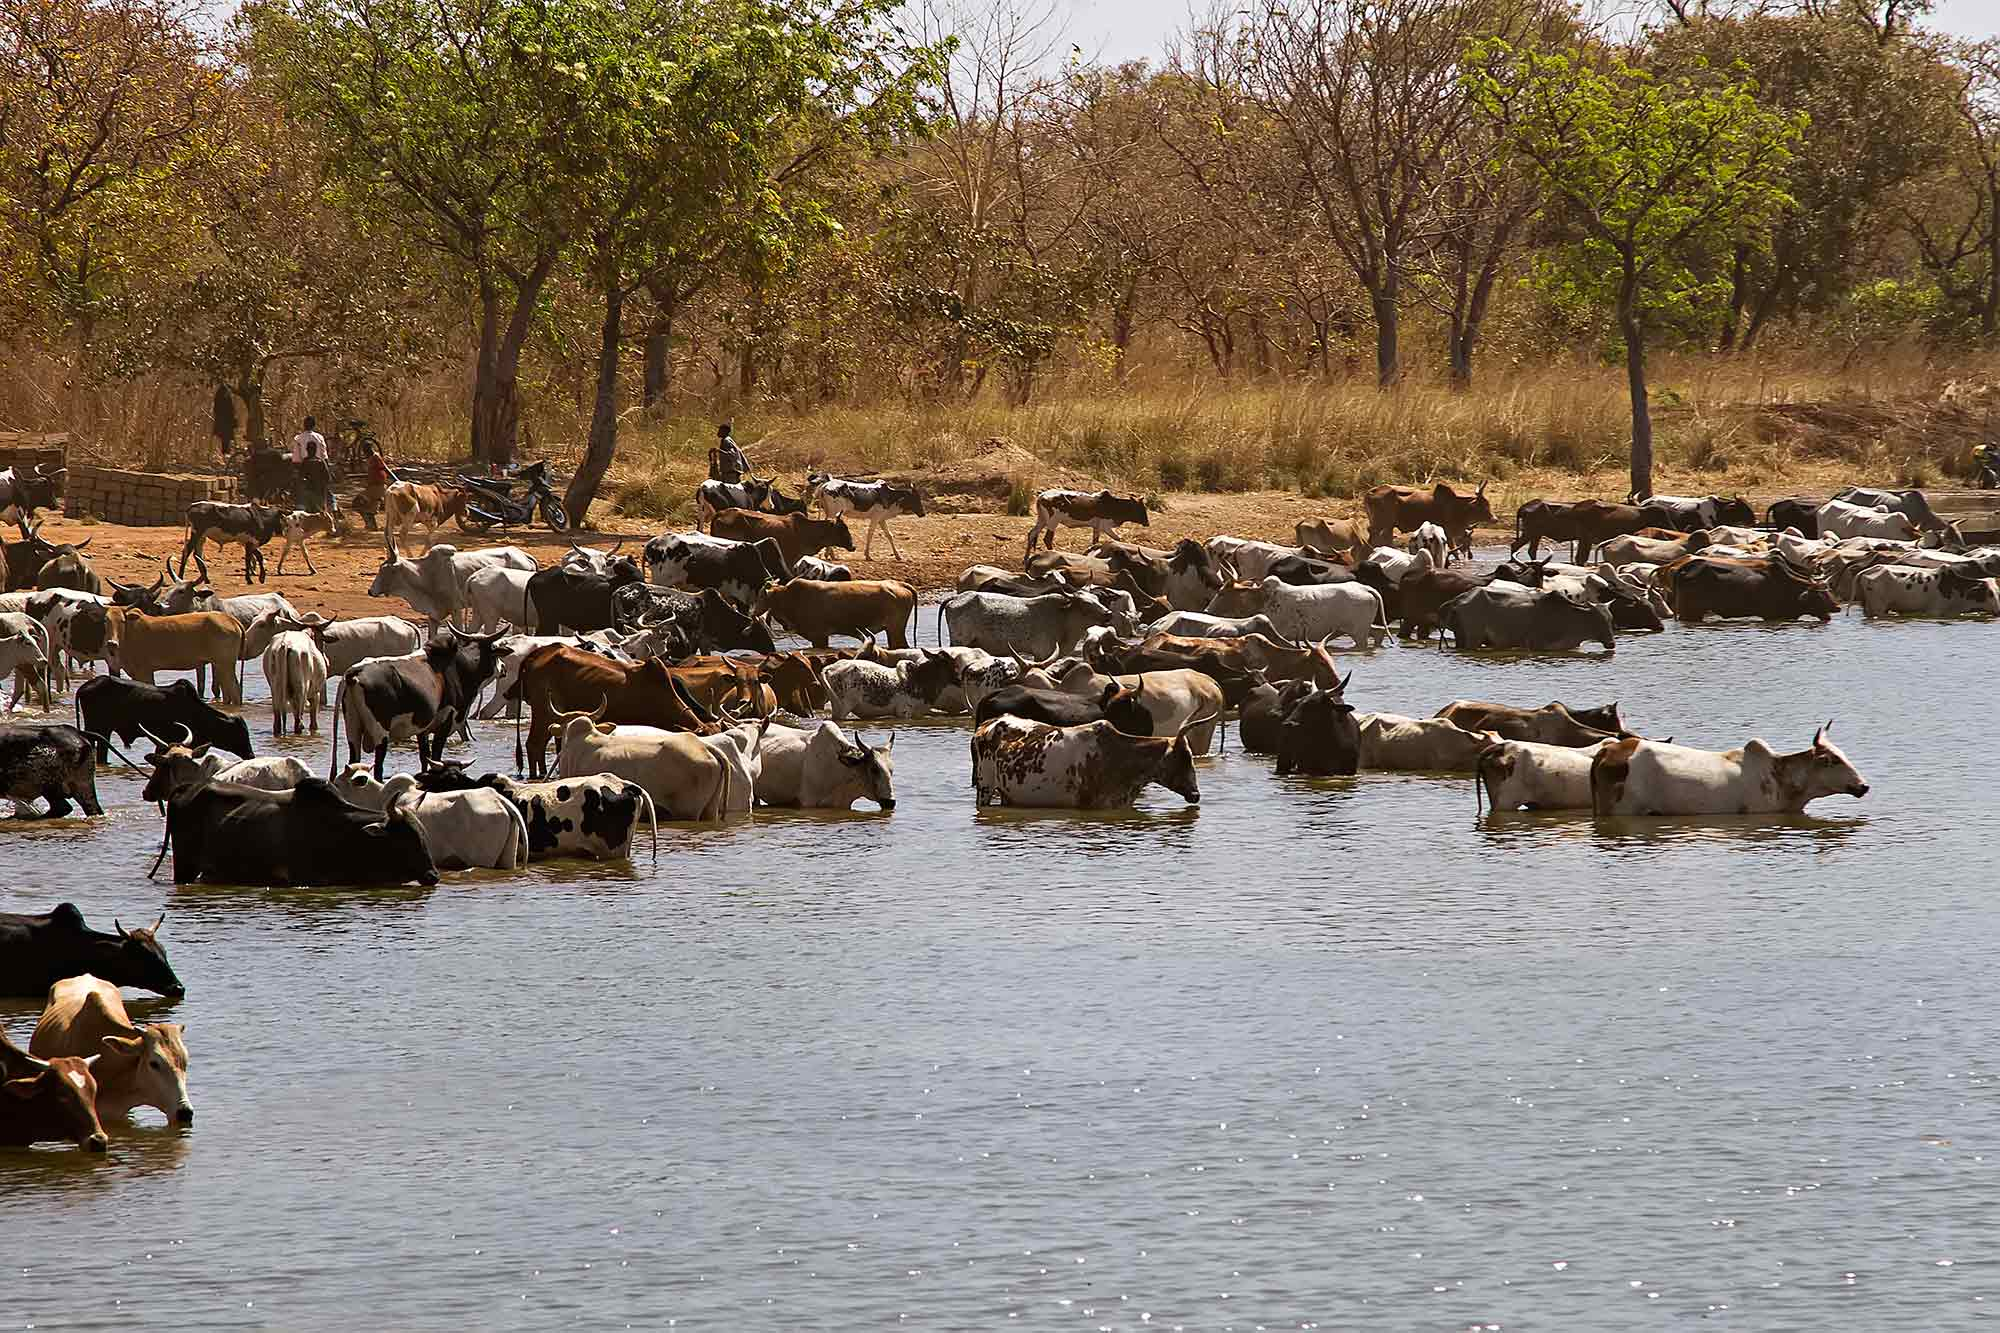 cattle-banfora-lake-burkina-faso-africa